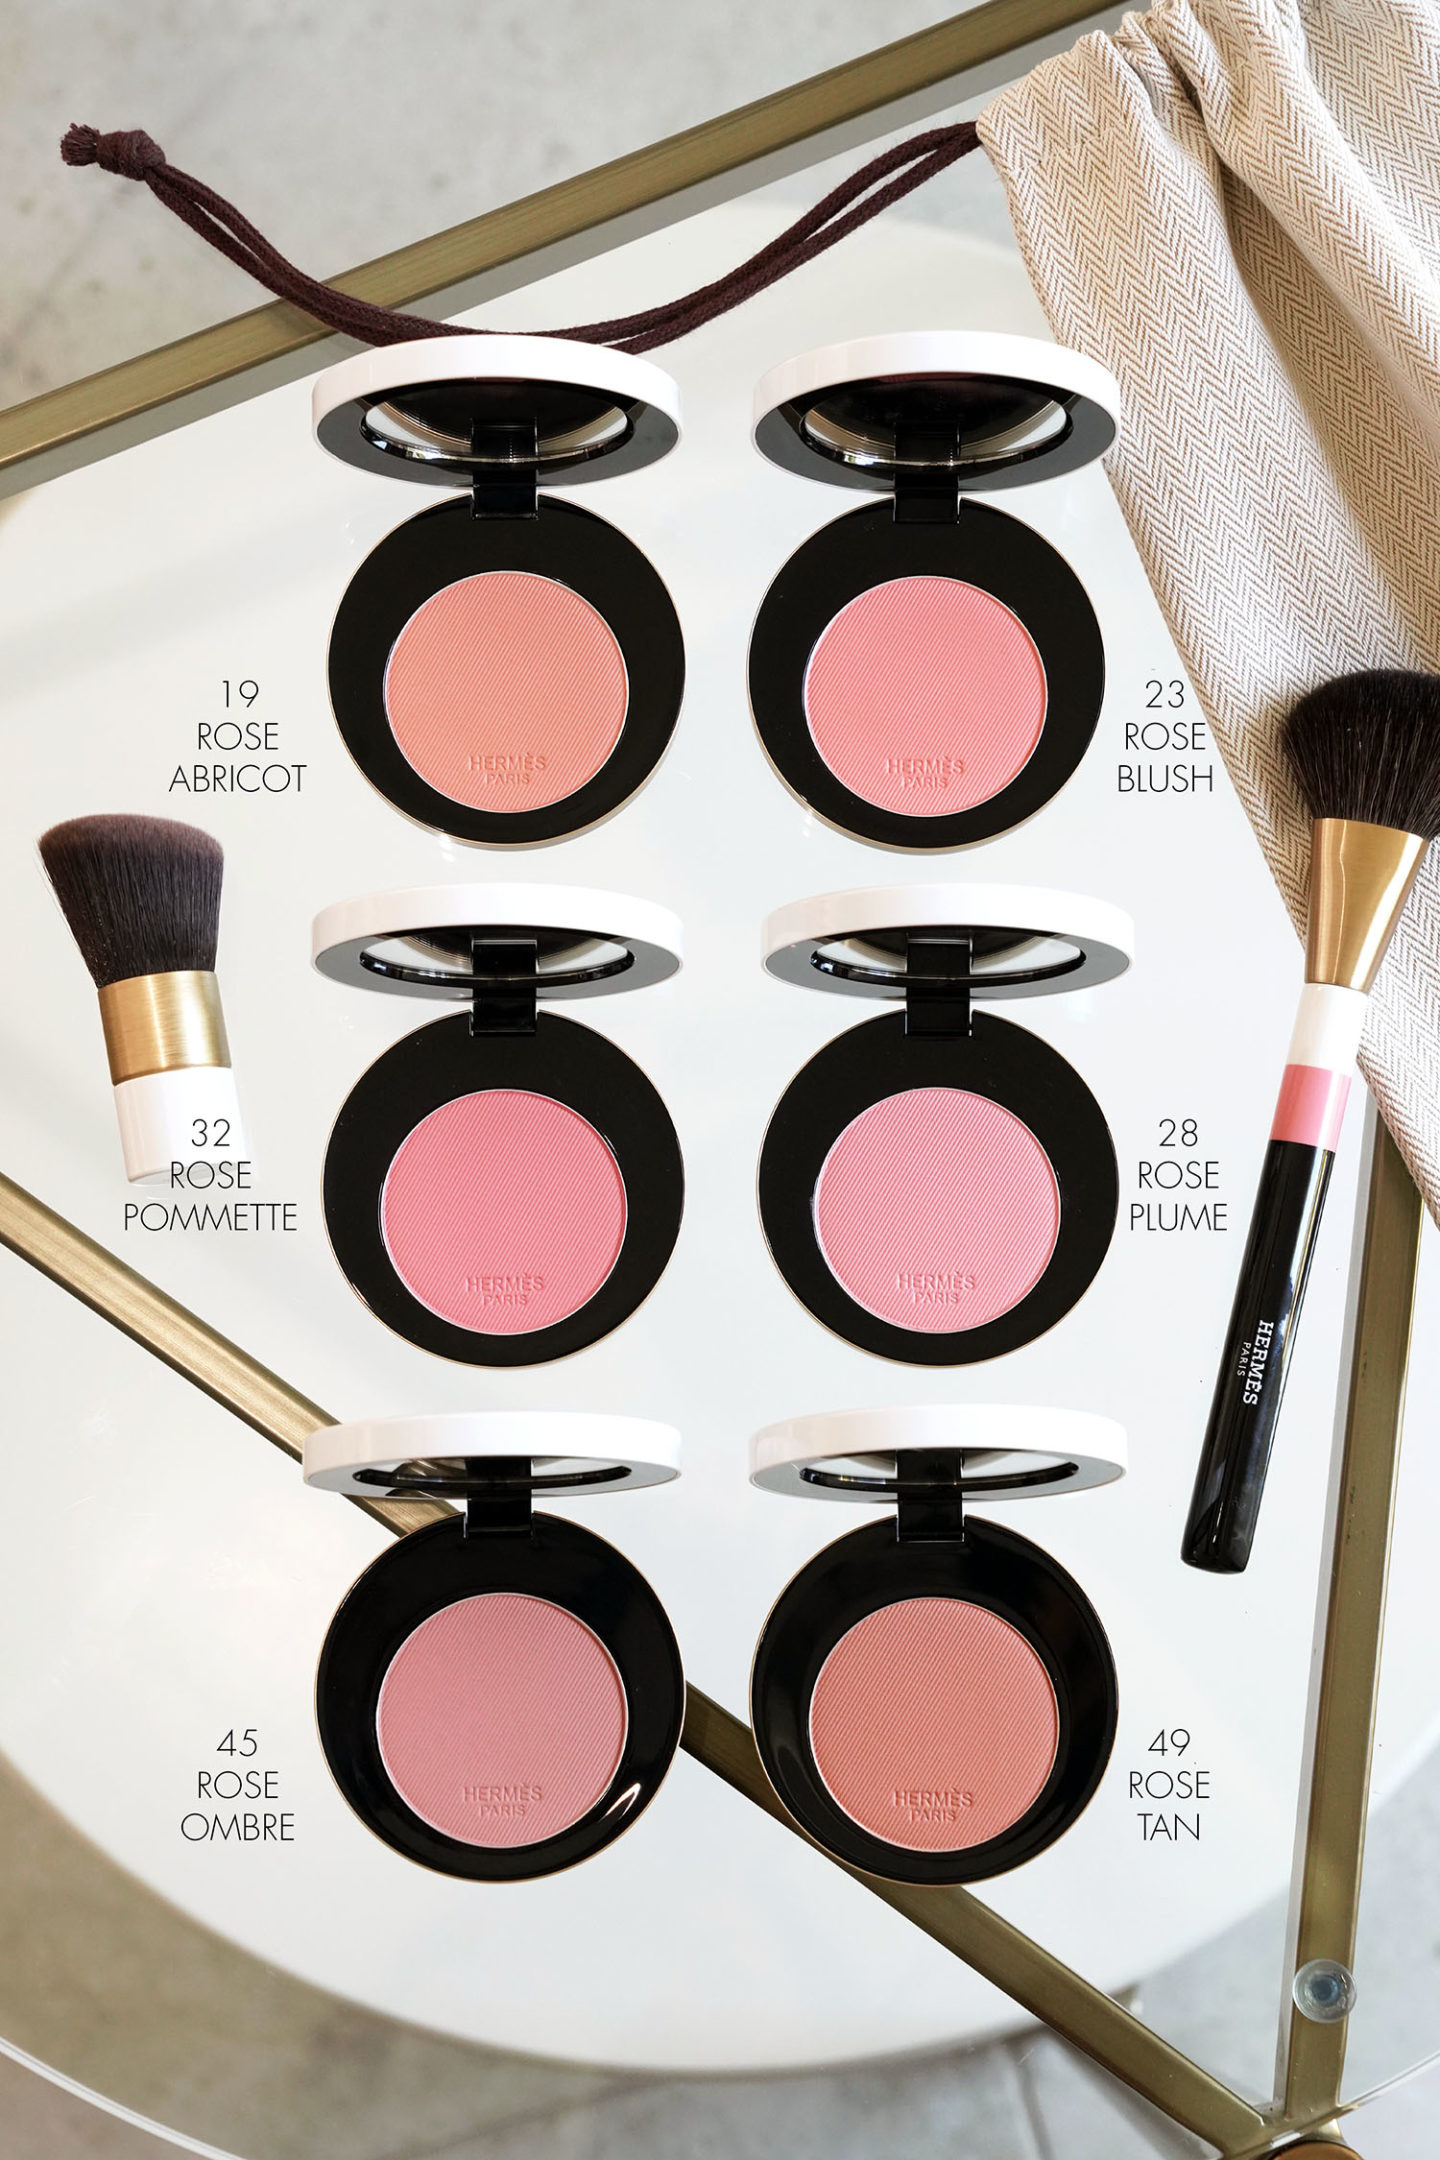 Rose Hermes Silky Blush Powder review via The Beauty Lookbook